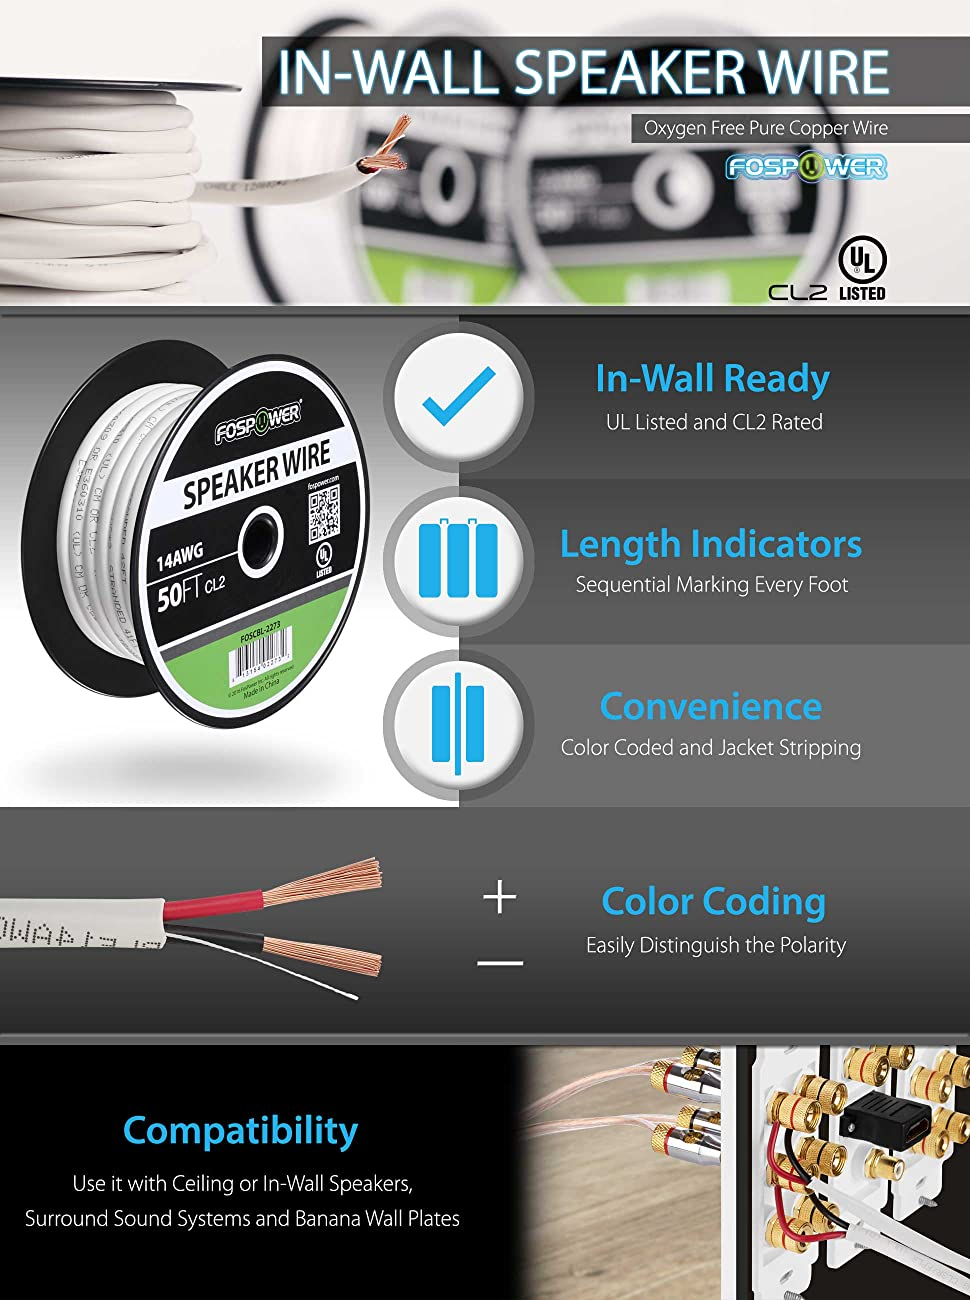 Fospower 16 Gauge Speaker Wire 50ft Cl2 Rated 16awg 2 Wiring Color Coding Fospowers Premium In Wall Is Used To Connect Power Amplifiers And Audio Receivers Speakers Home School Church Or Business